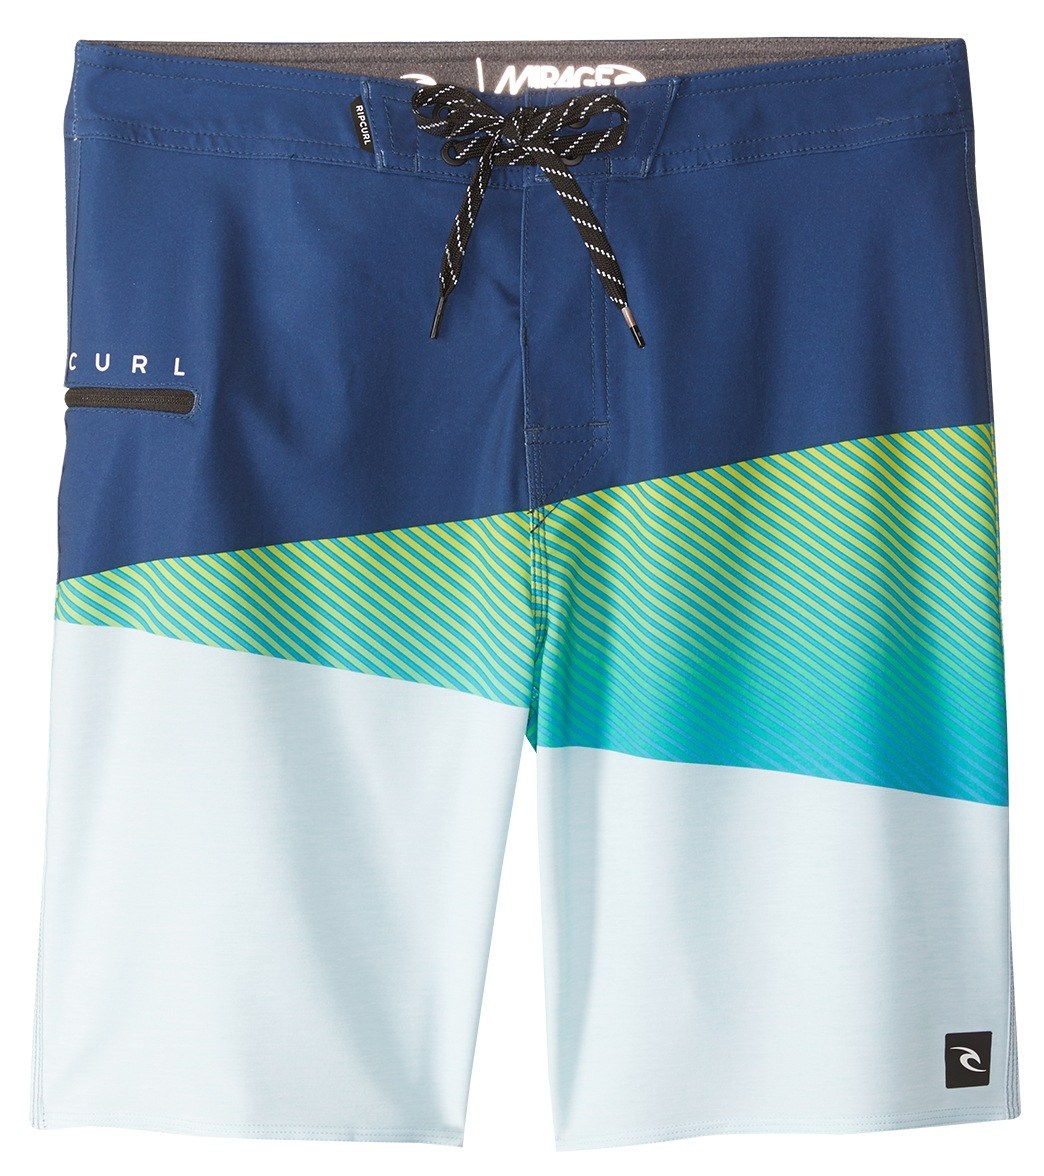 1719579f8399 Rip Curl Men's Mirage Wedge Boardshort at SwimOutlet.com - Free ...